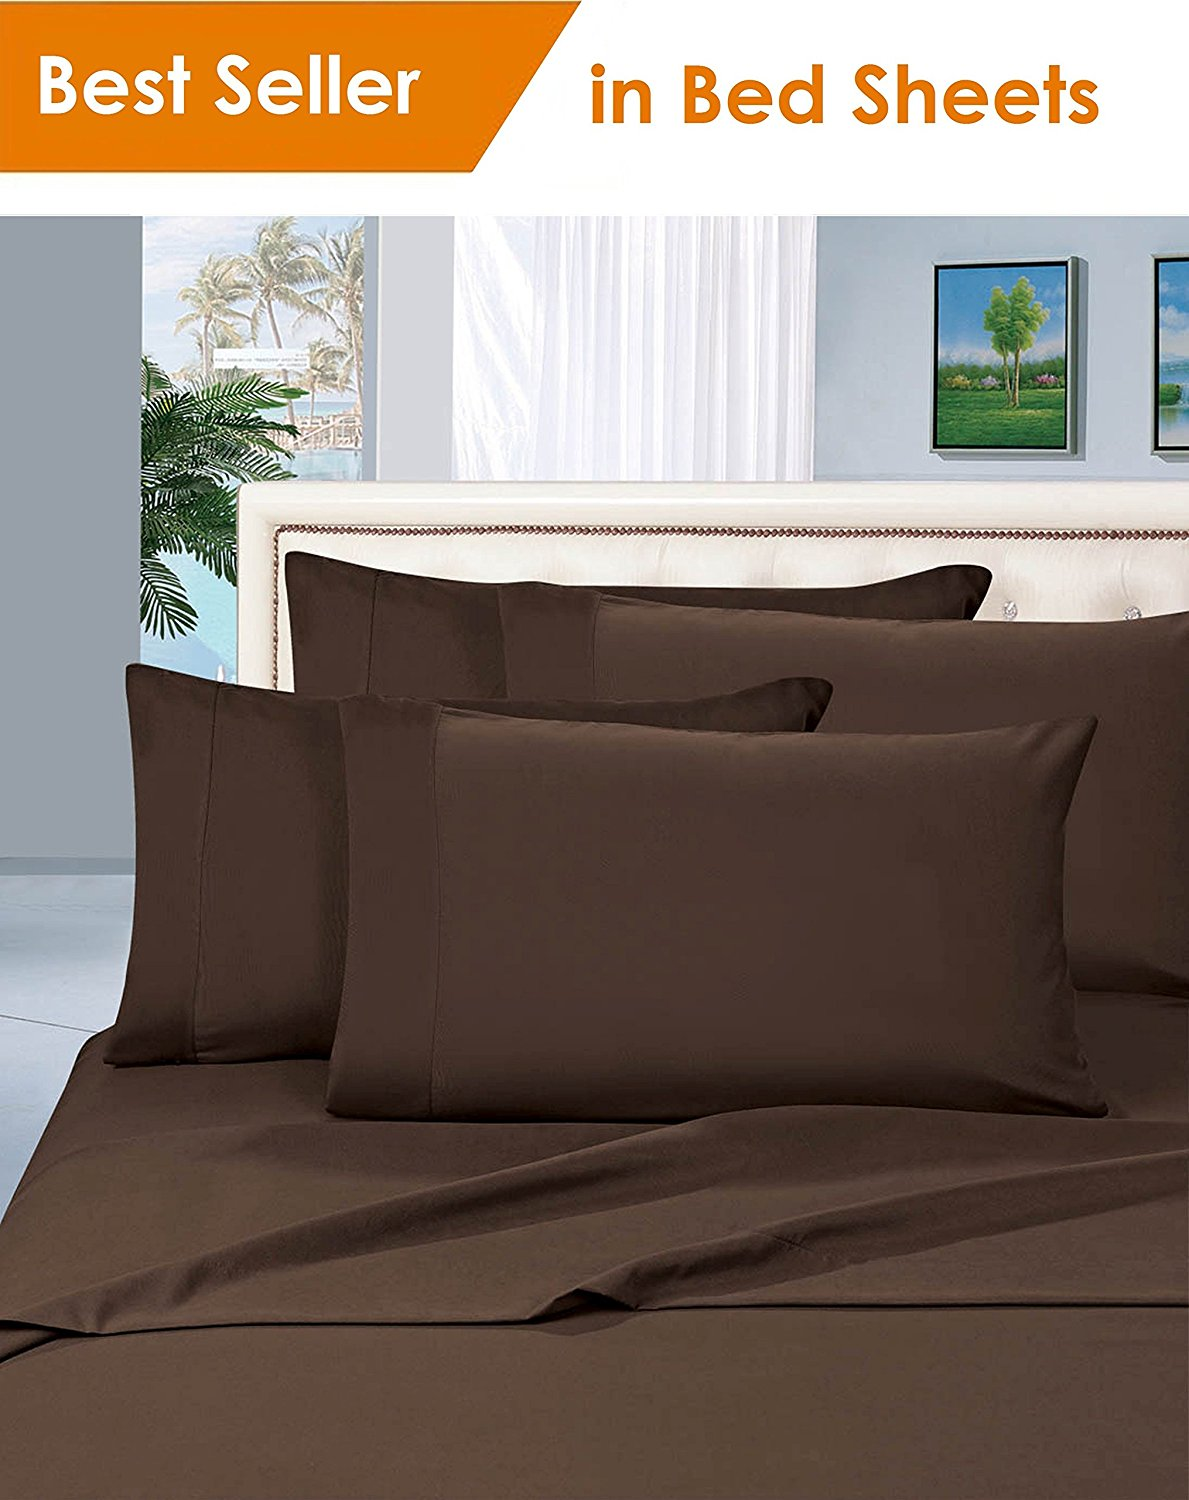 hotel luxury thread count egyptian quality sheet set king chocolate brown